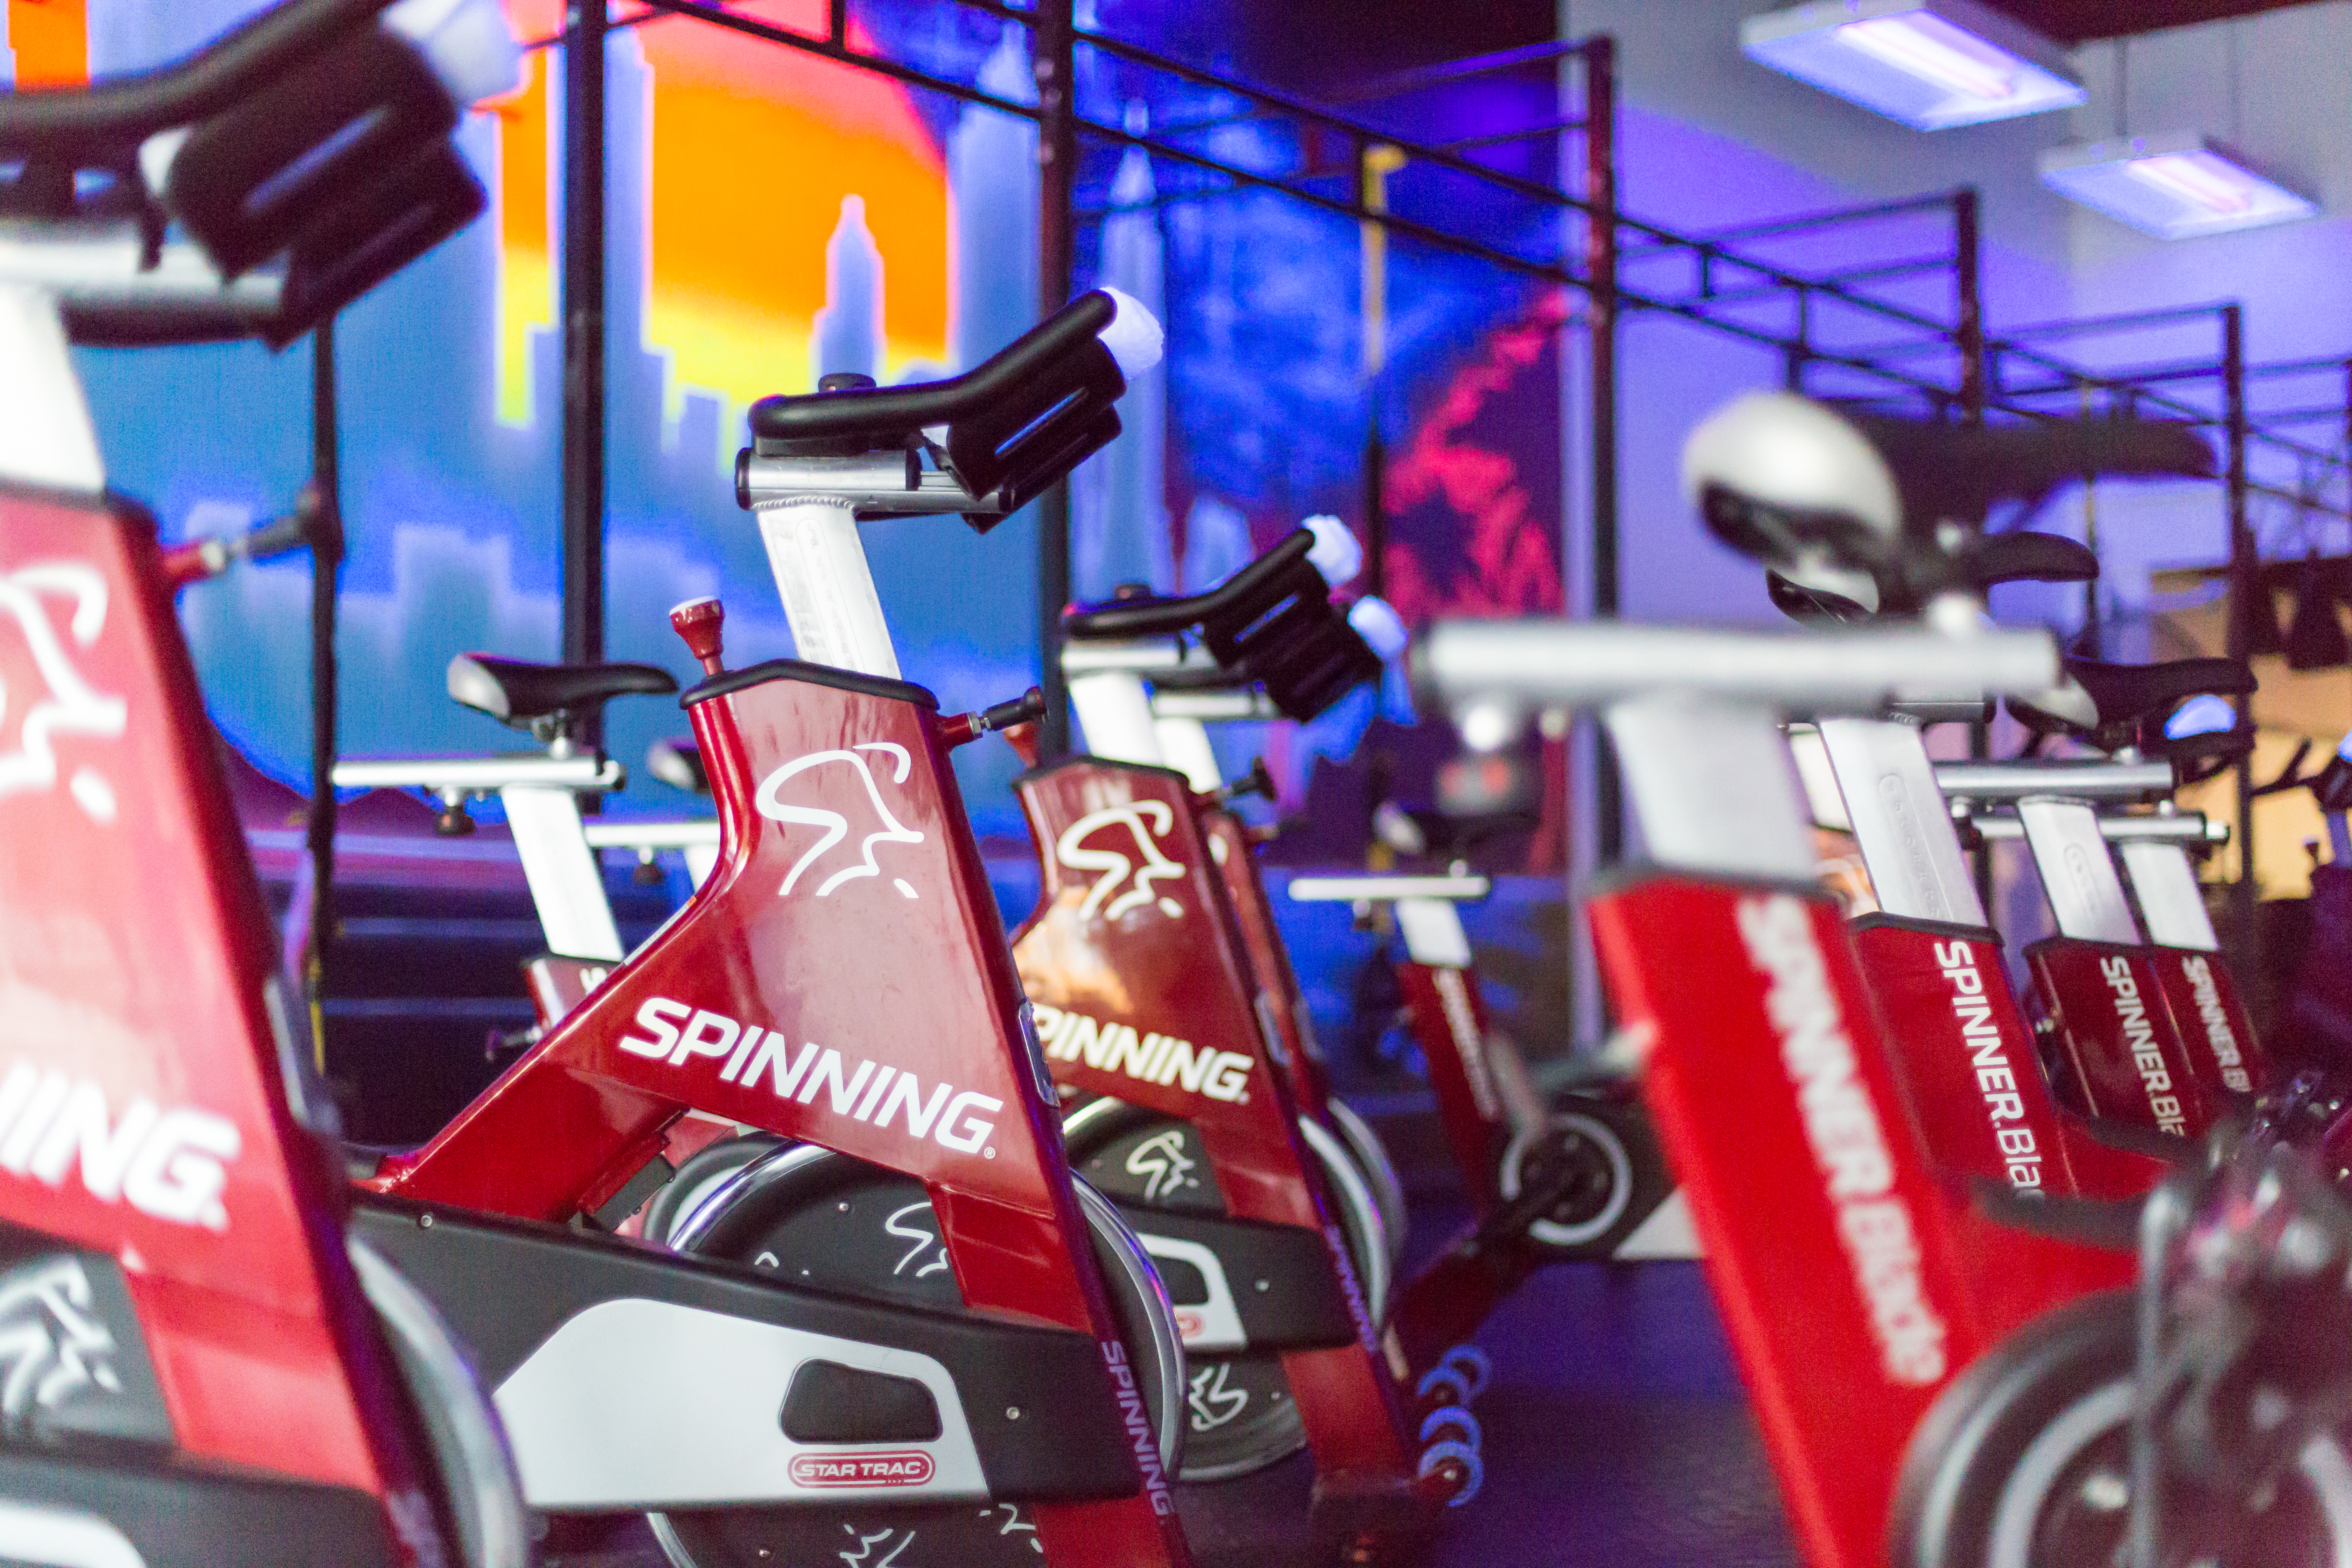 Where can I find spin classes near me?